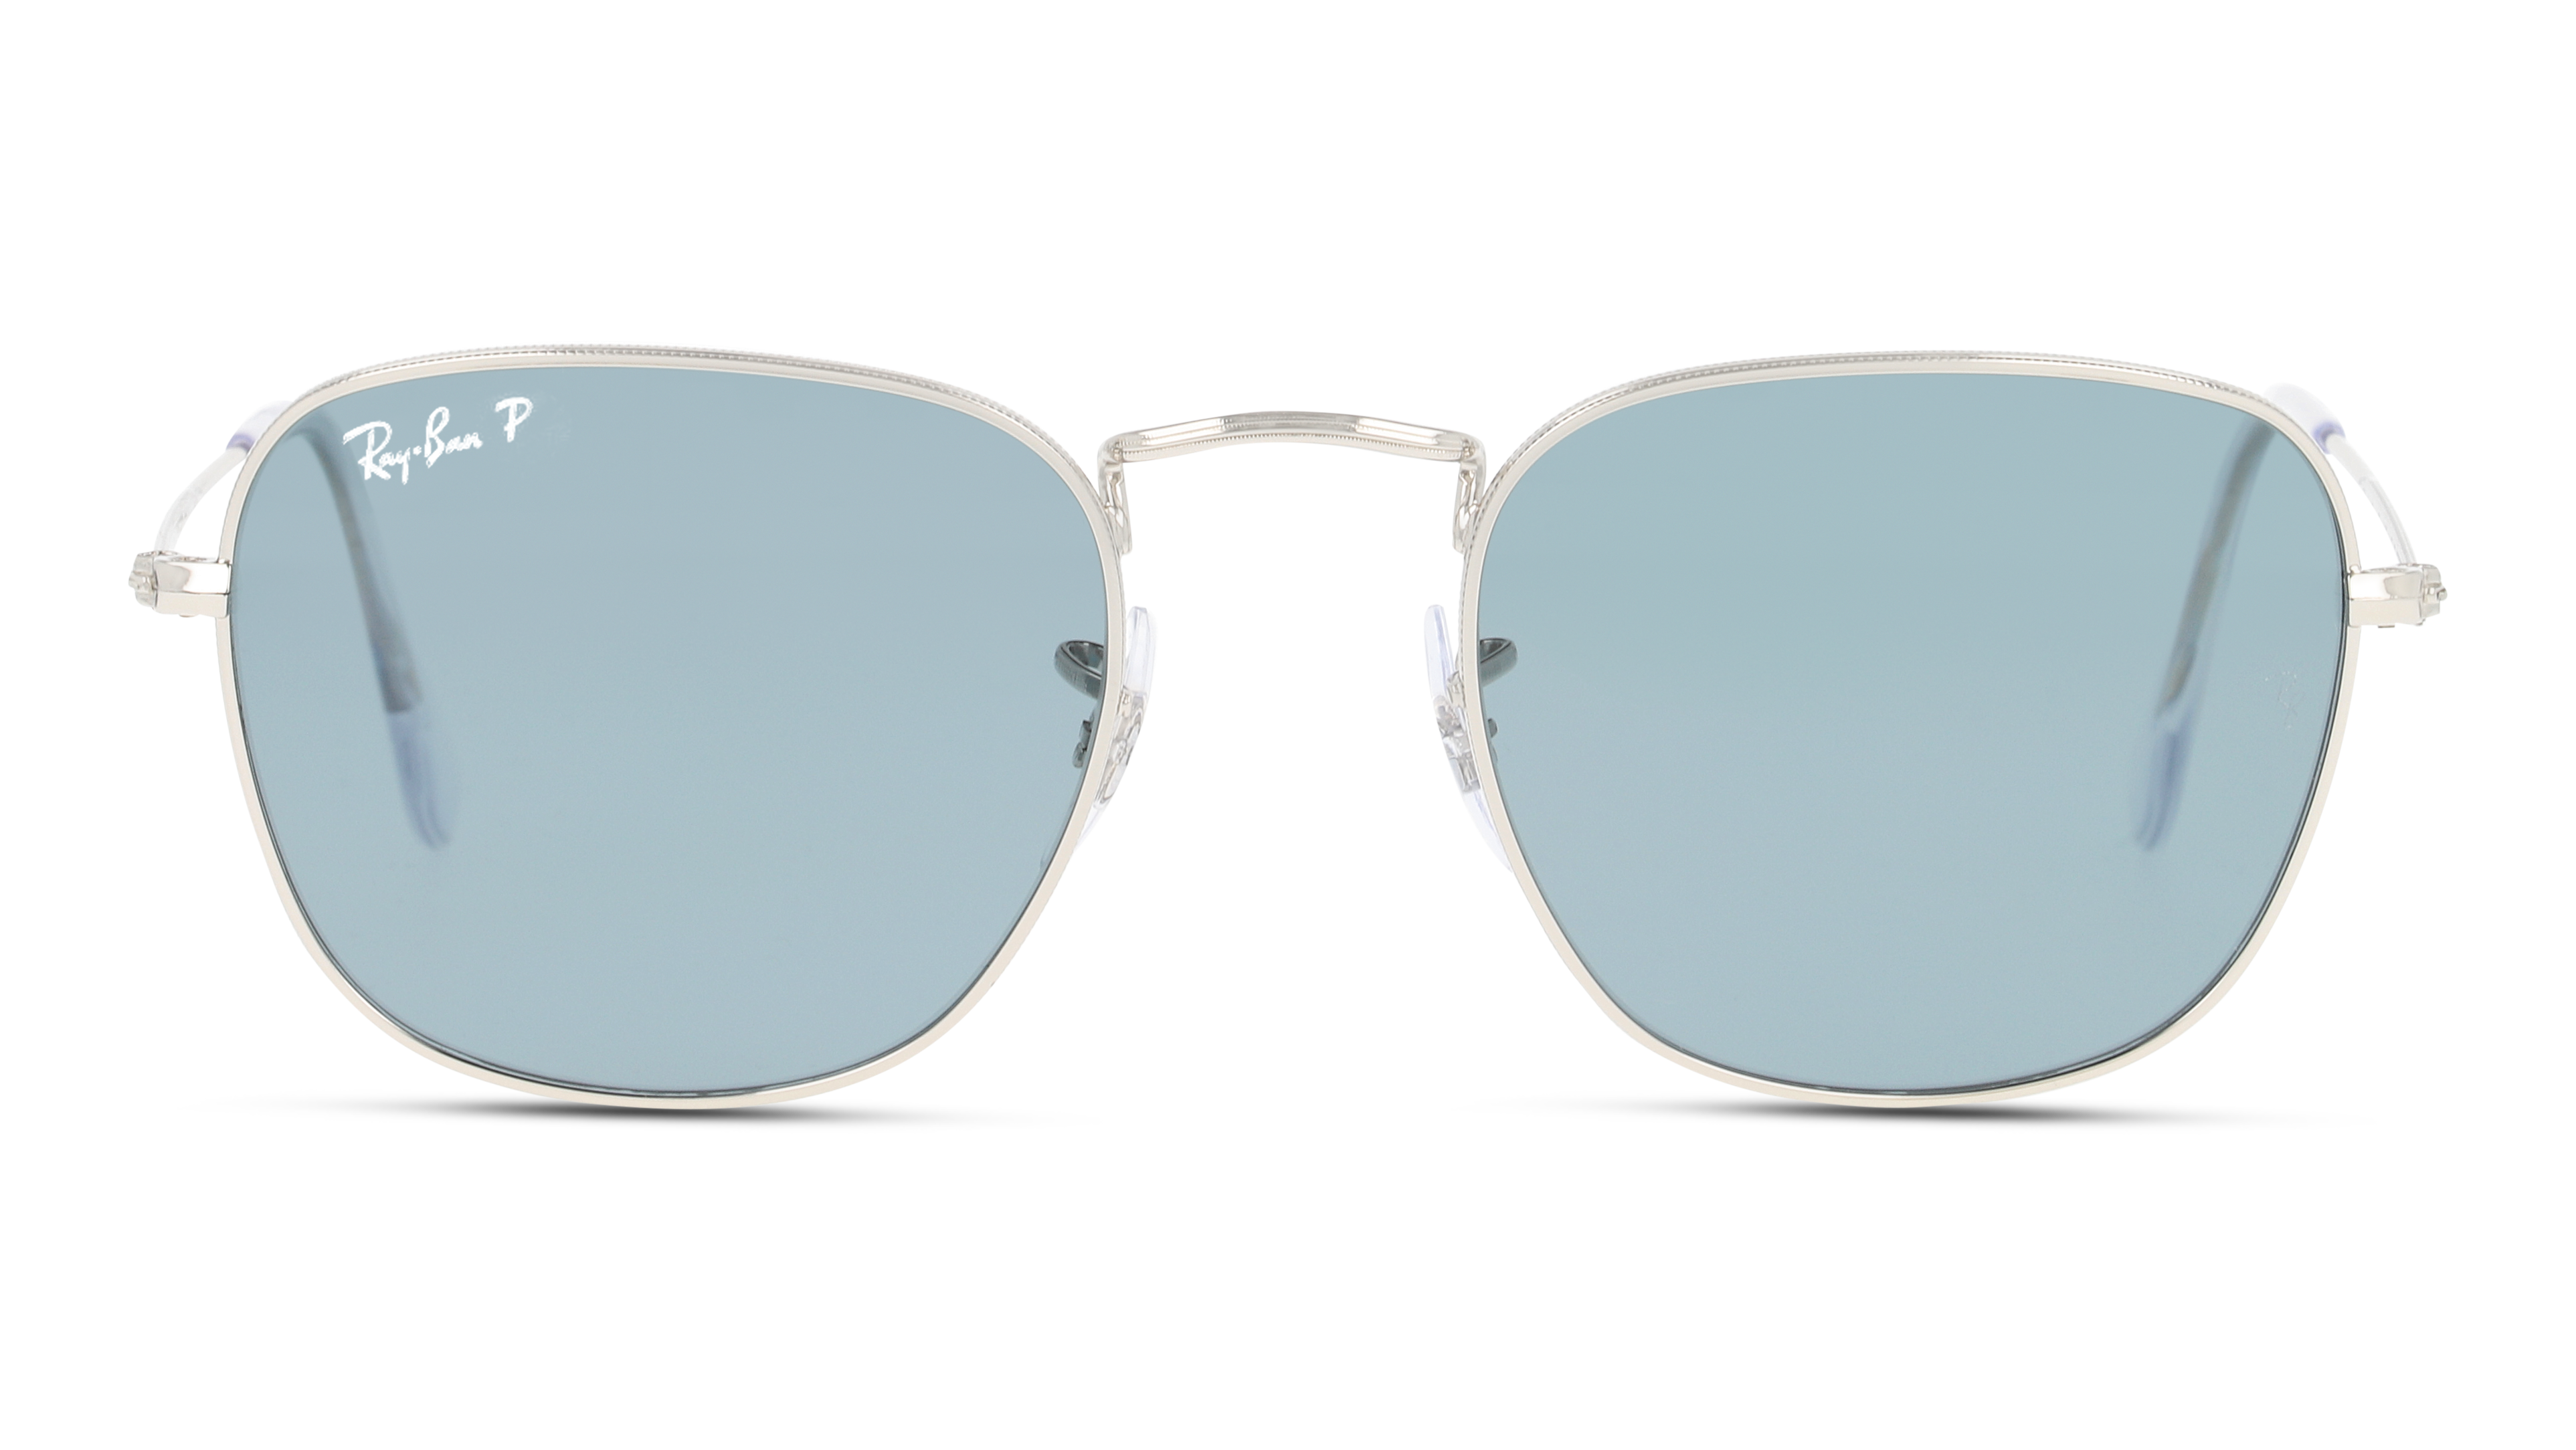 Front Ray-Ban 0RB3857/9198S2/5120/145 Sølv